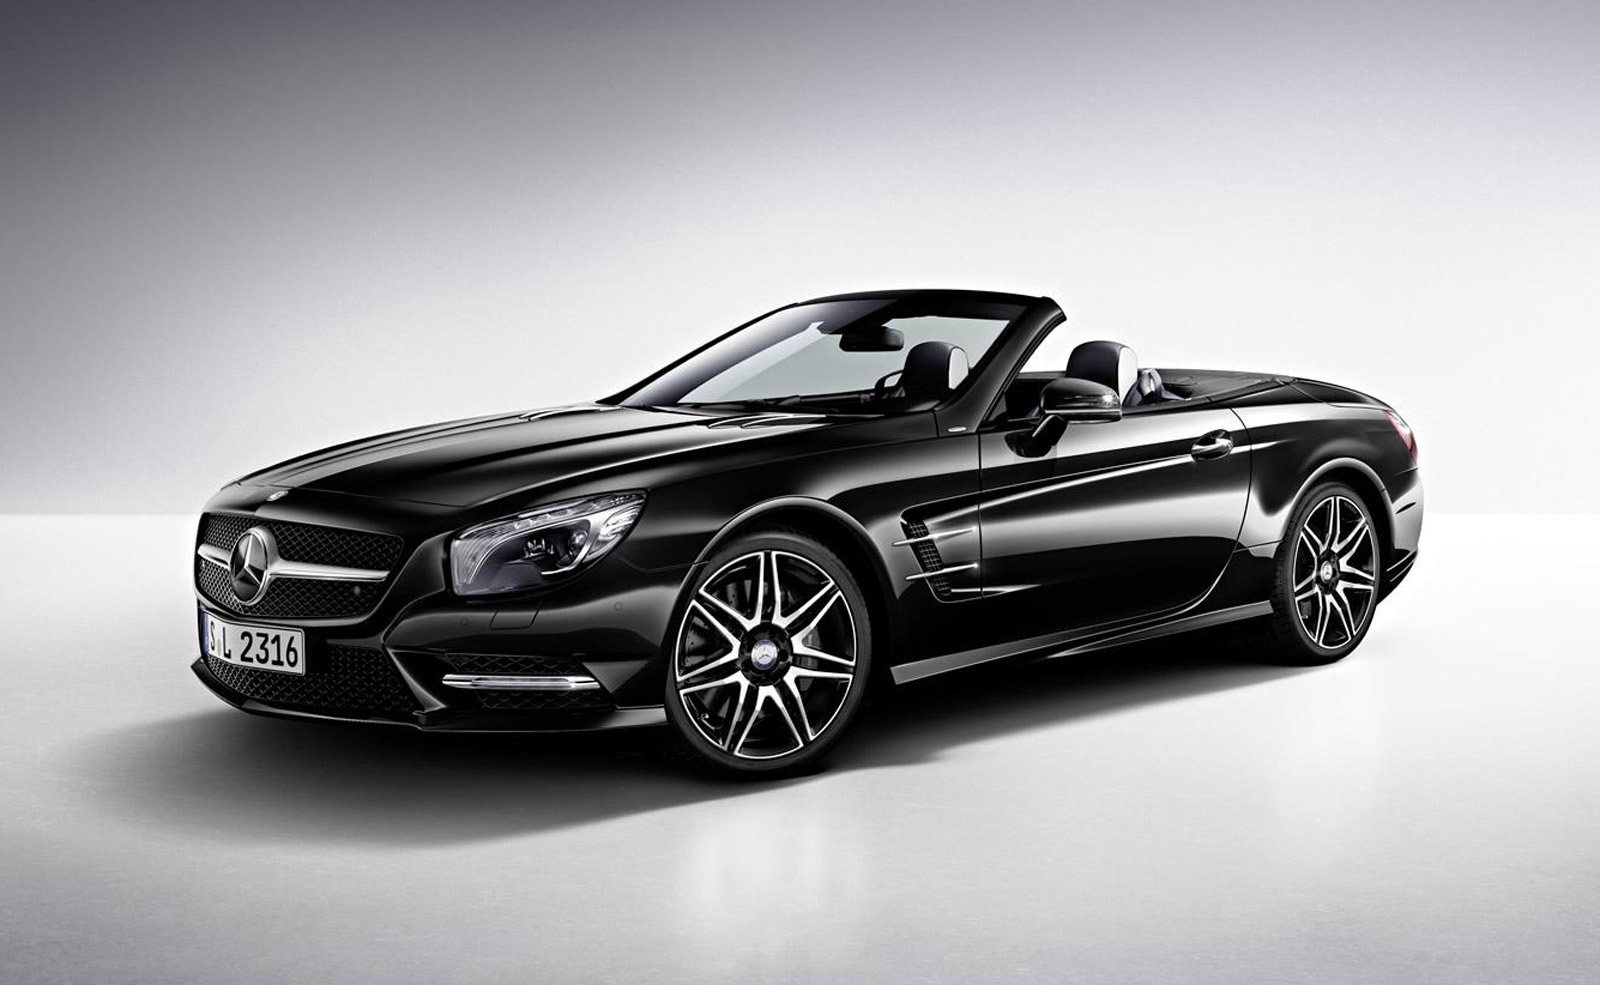 2015 mercedes sl class sees price drop with new v 6 variant. Black Bedroom Furniture Sets. Home Design Ideas